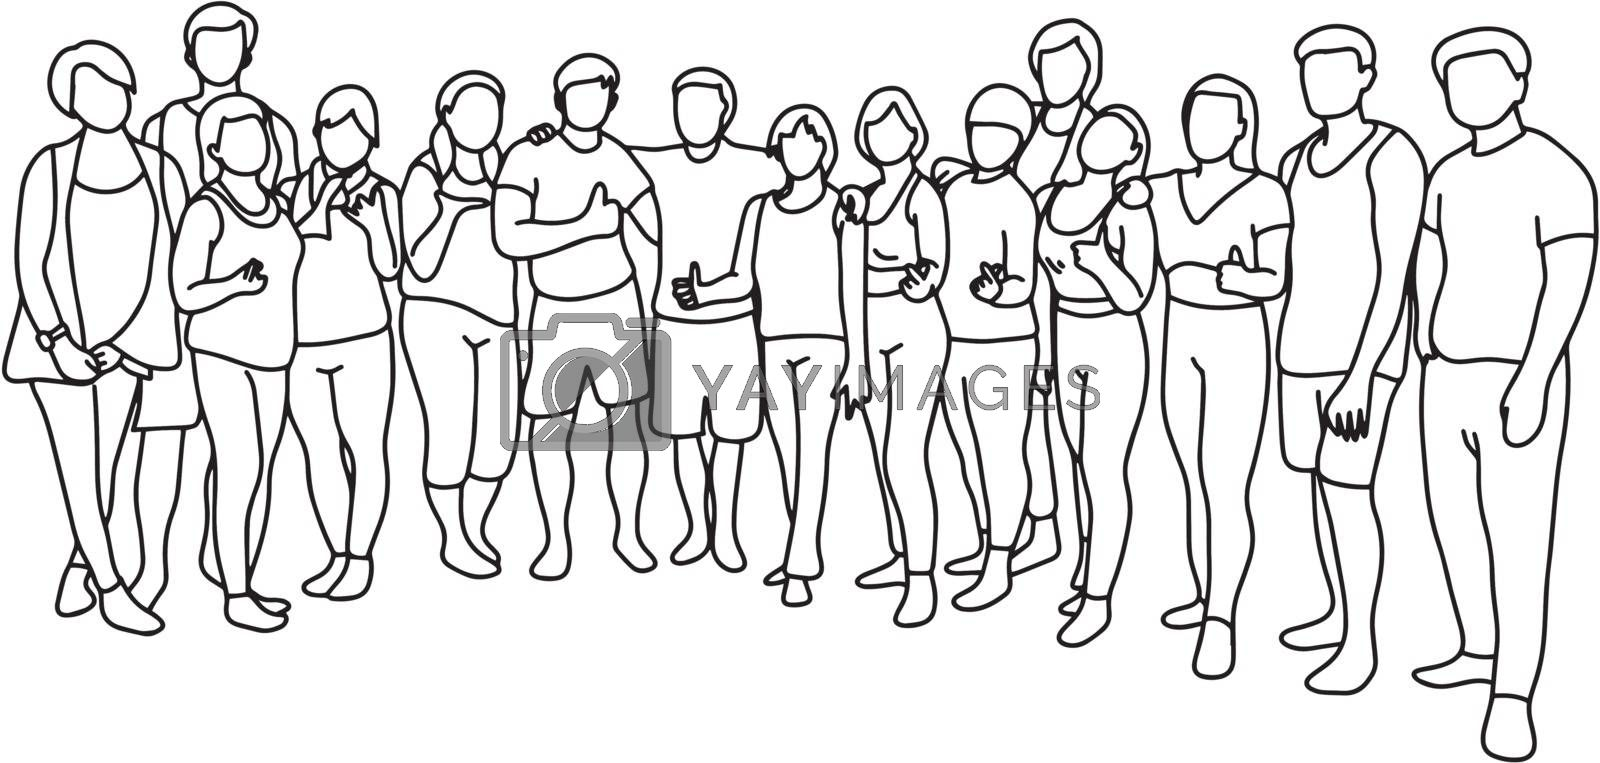 people of yoga class standing together vector illustration sketch doodle hand drawn with black lines isolated on white background.